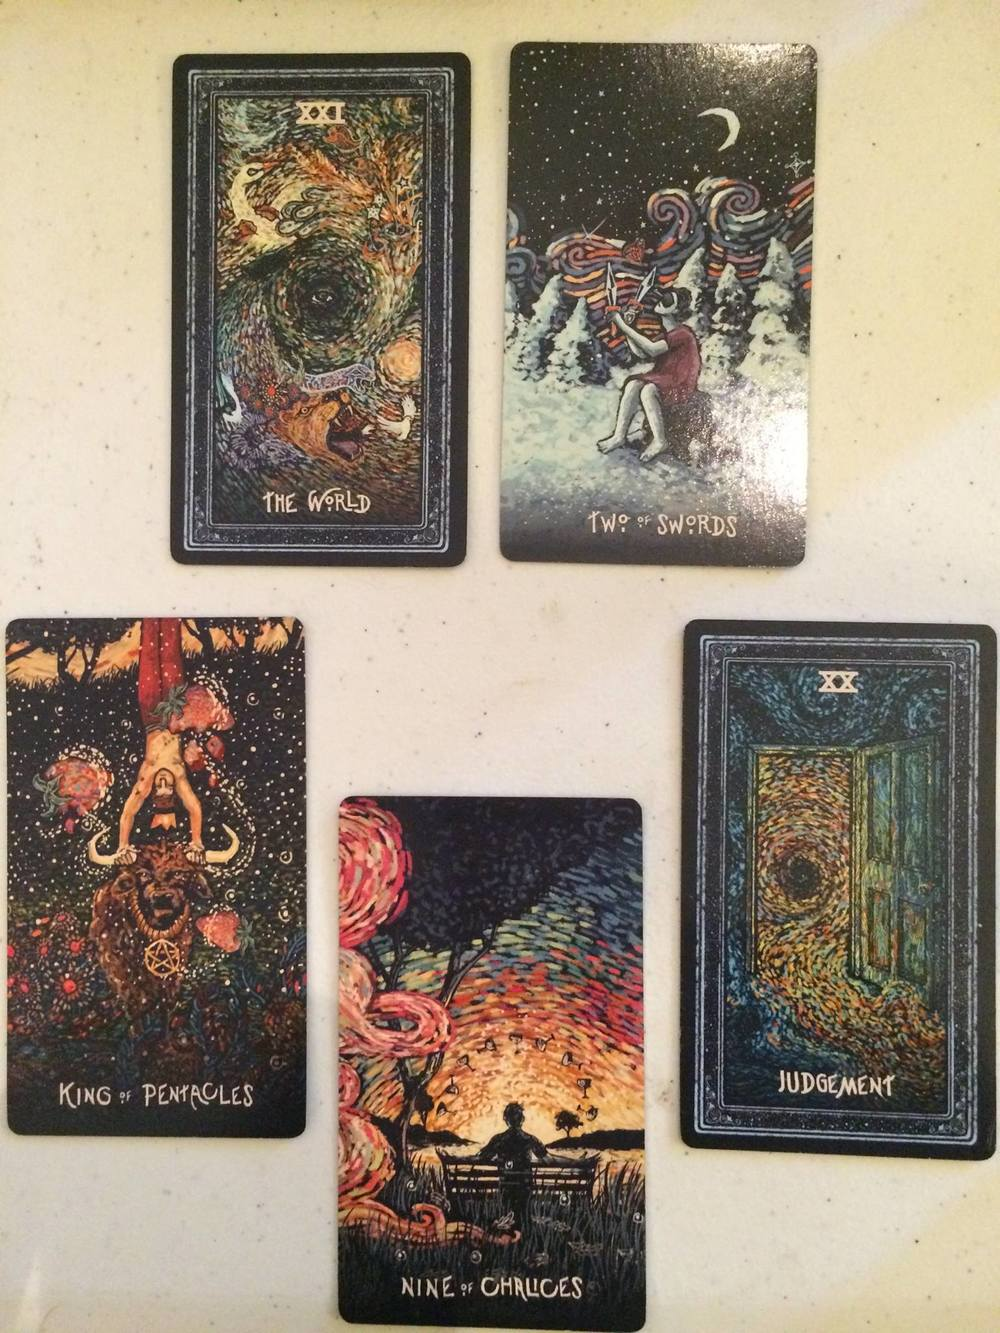 (9 of Cups, King of Pentacles, XXI The World, 2 of Swords, XX Judgement; Prisma Visions Tarot)